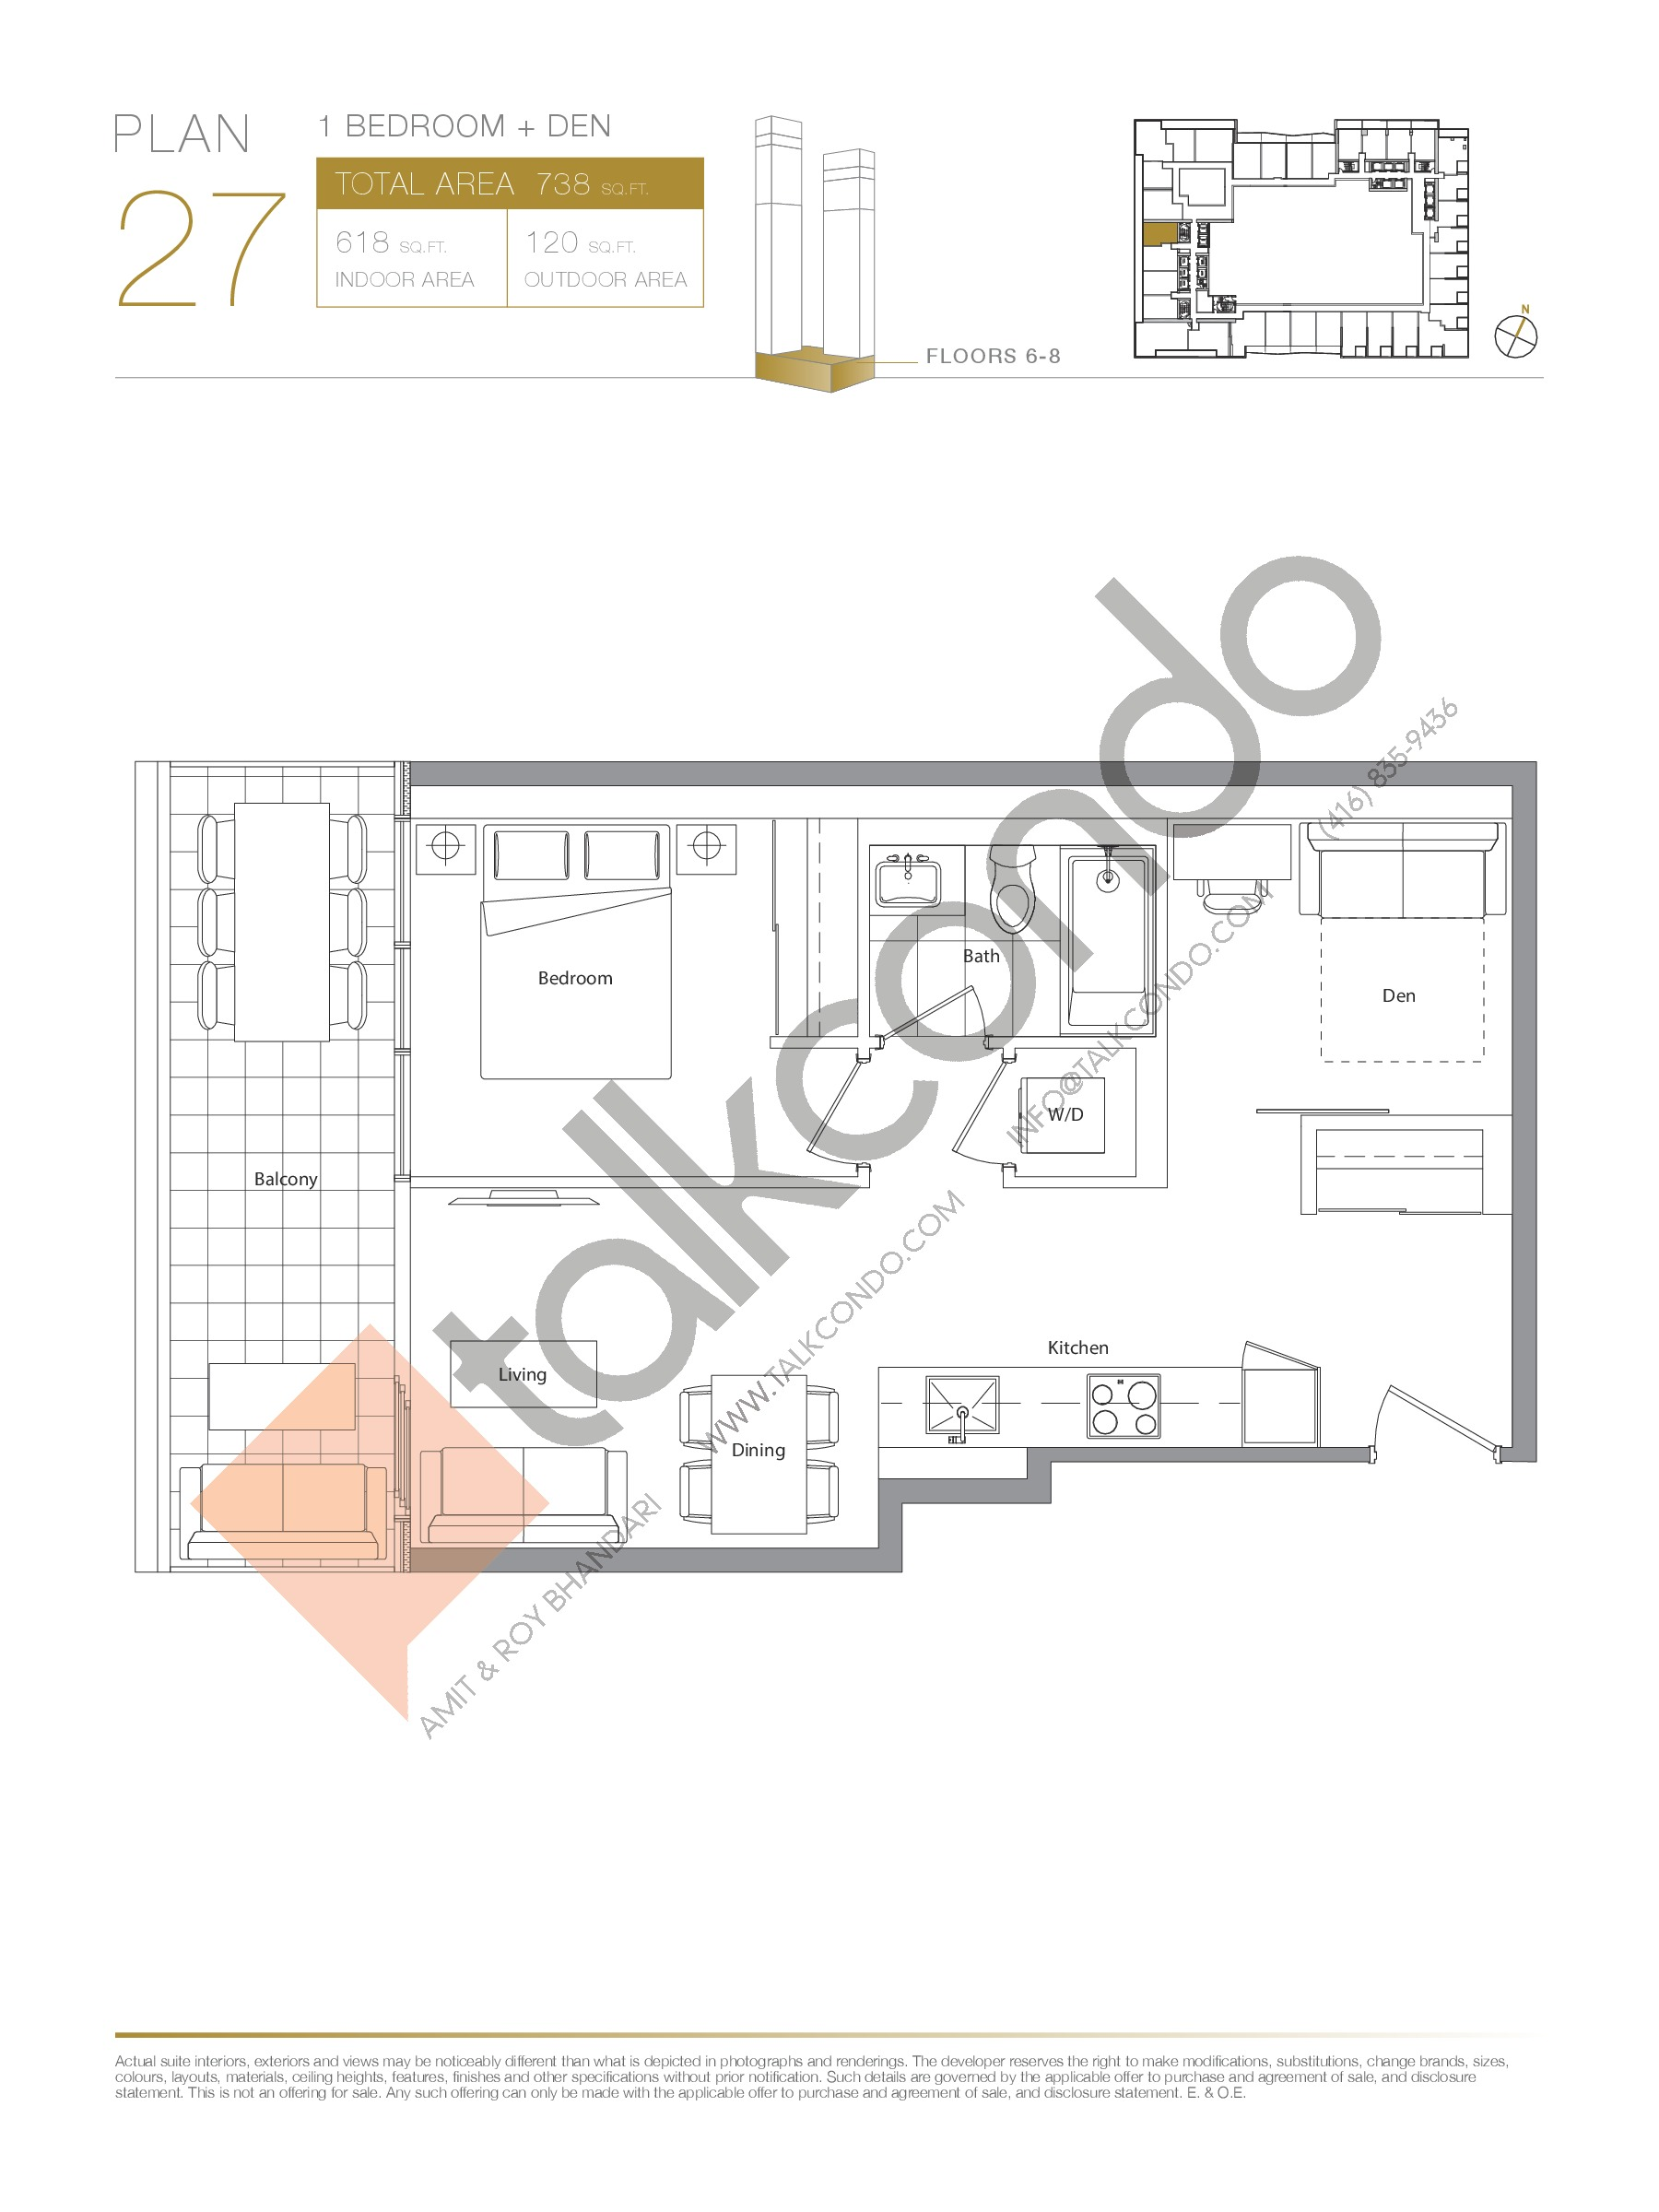 Plan 27 Floor Plan at Concord Canada House Condos - 618 sq.ft